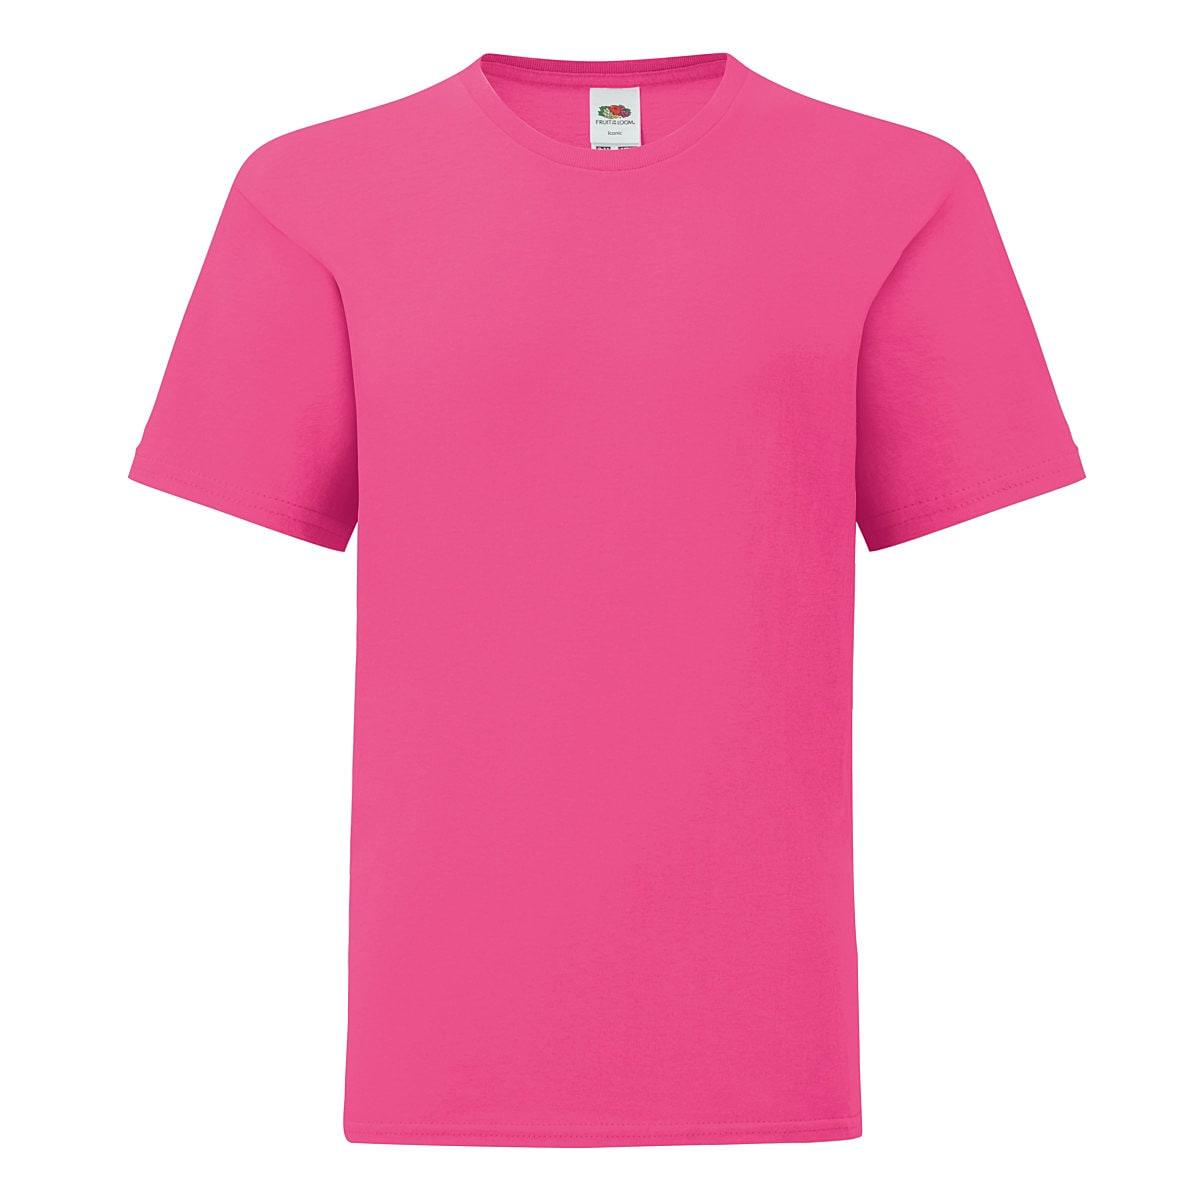 Fruit Of The Loom Kids Iconic T-Shirt in Fuchsia (Product Code: 61023)